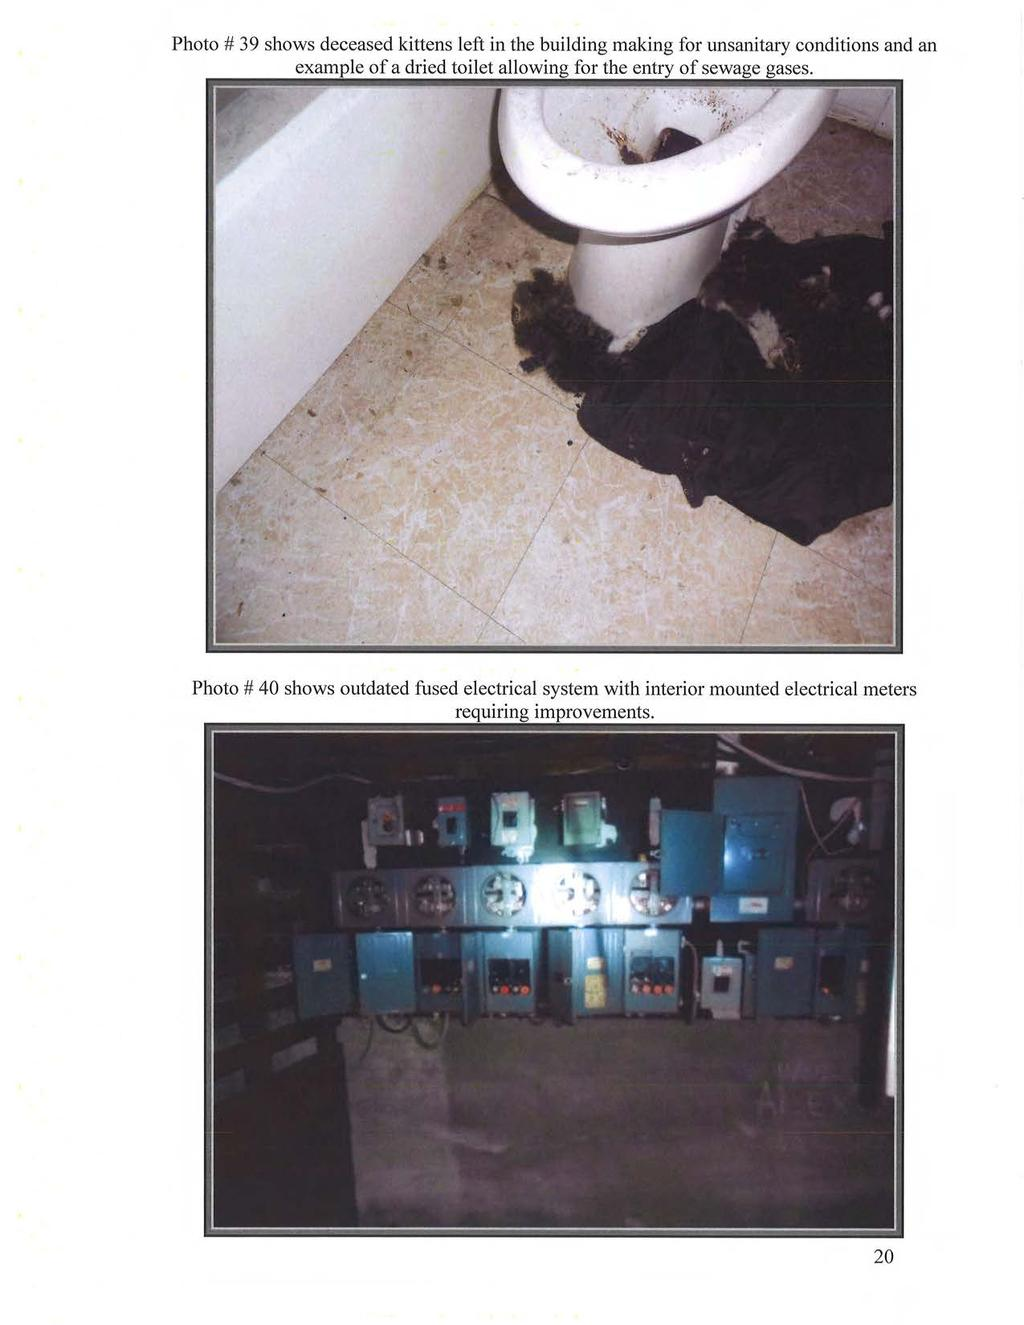 Photo# 39 shows deceased kittens left in the building making for unsanitary conditions and an of a dried toilet for the